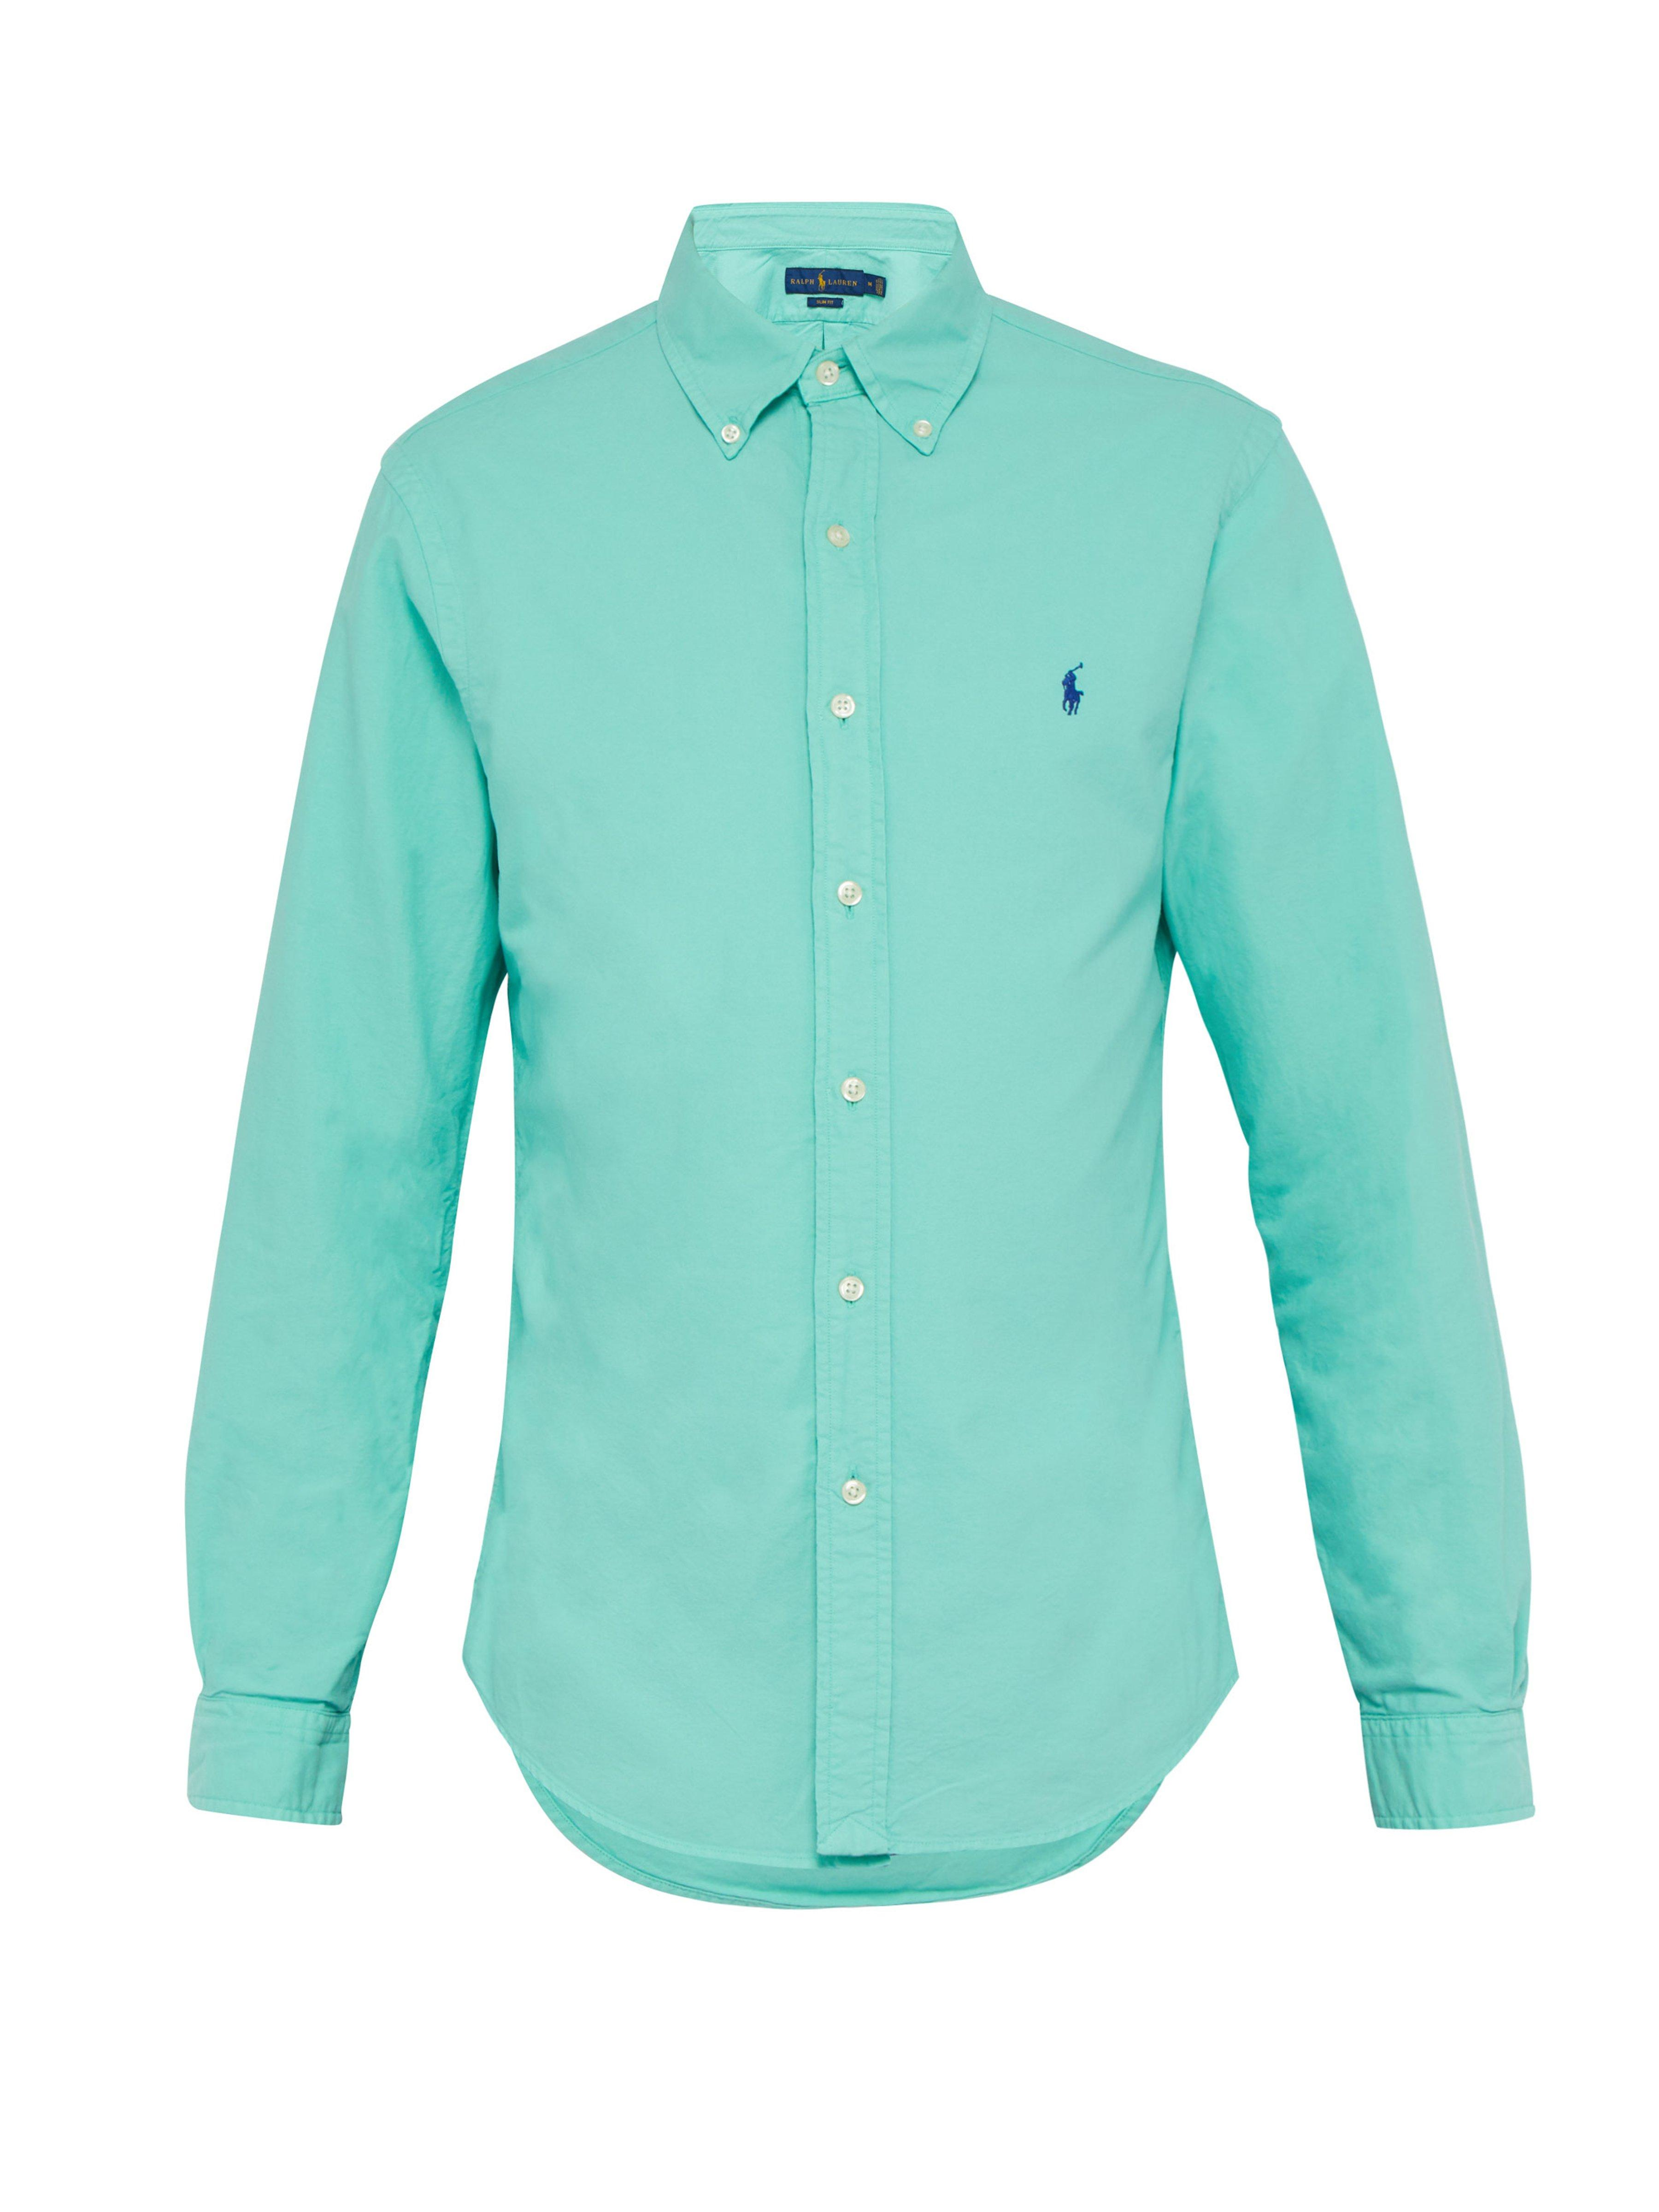 0dd827e55c5a Polo Ralph Lauren Slim Fit Cotton Oxford Shirt in Green for Men - Lyst